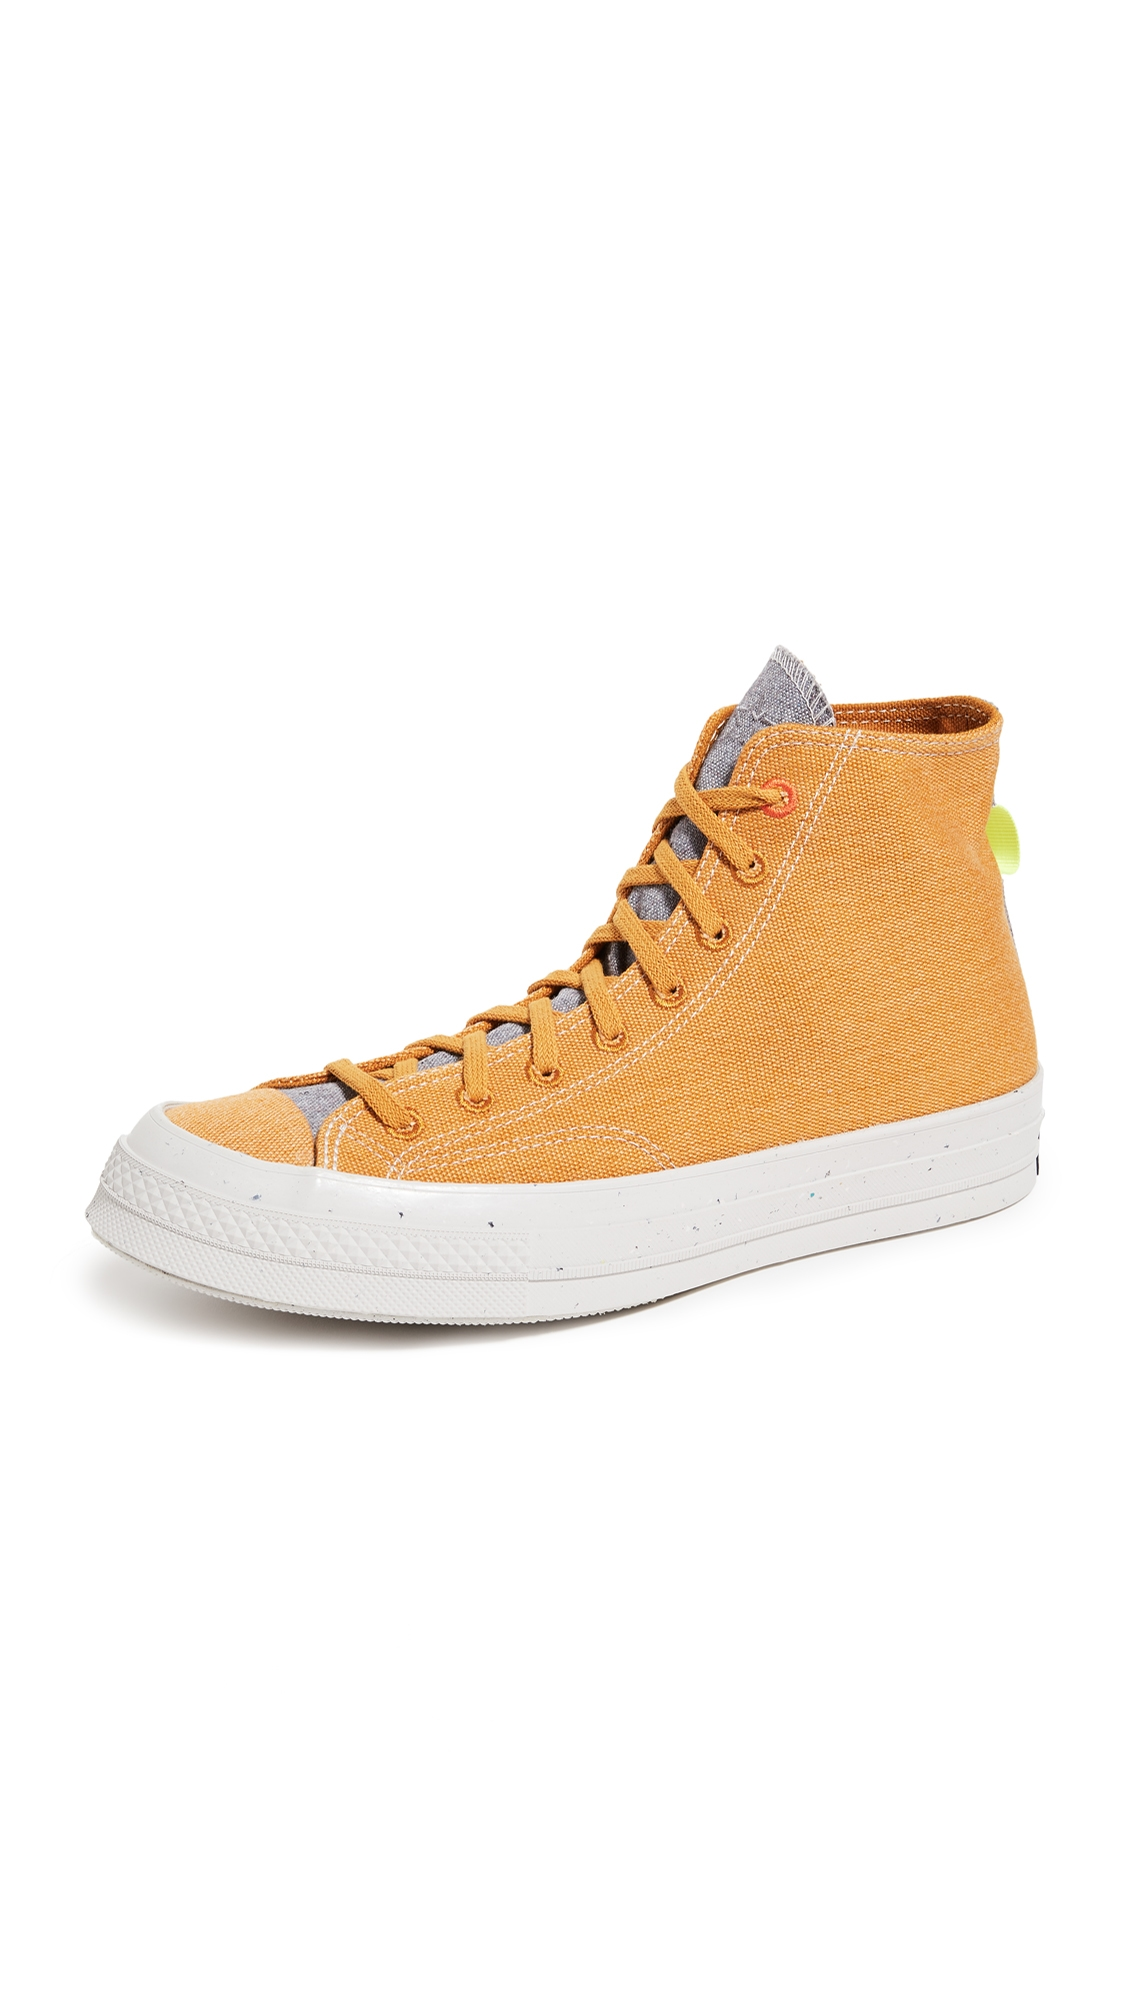 Chuck 70 Renew High Top Sneakers